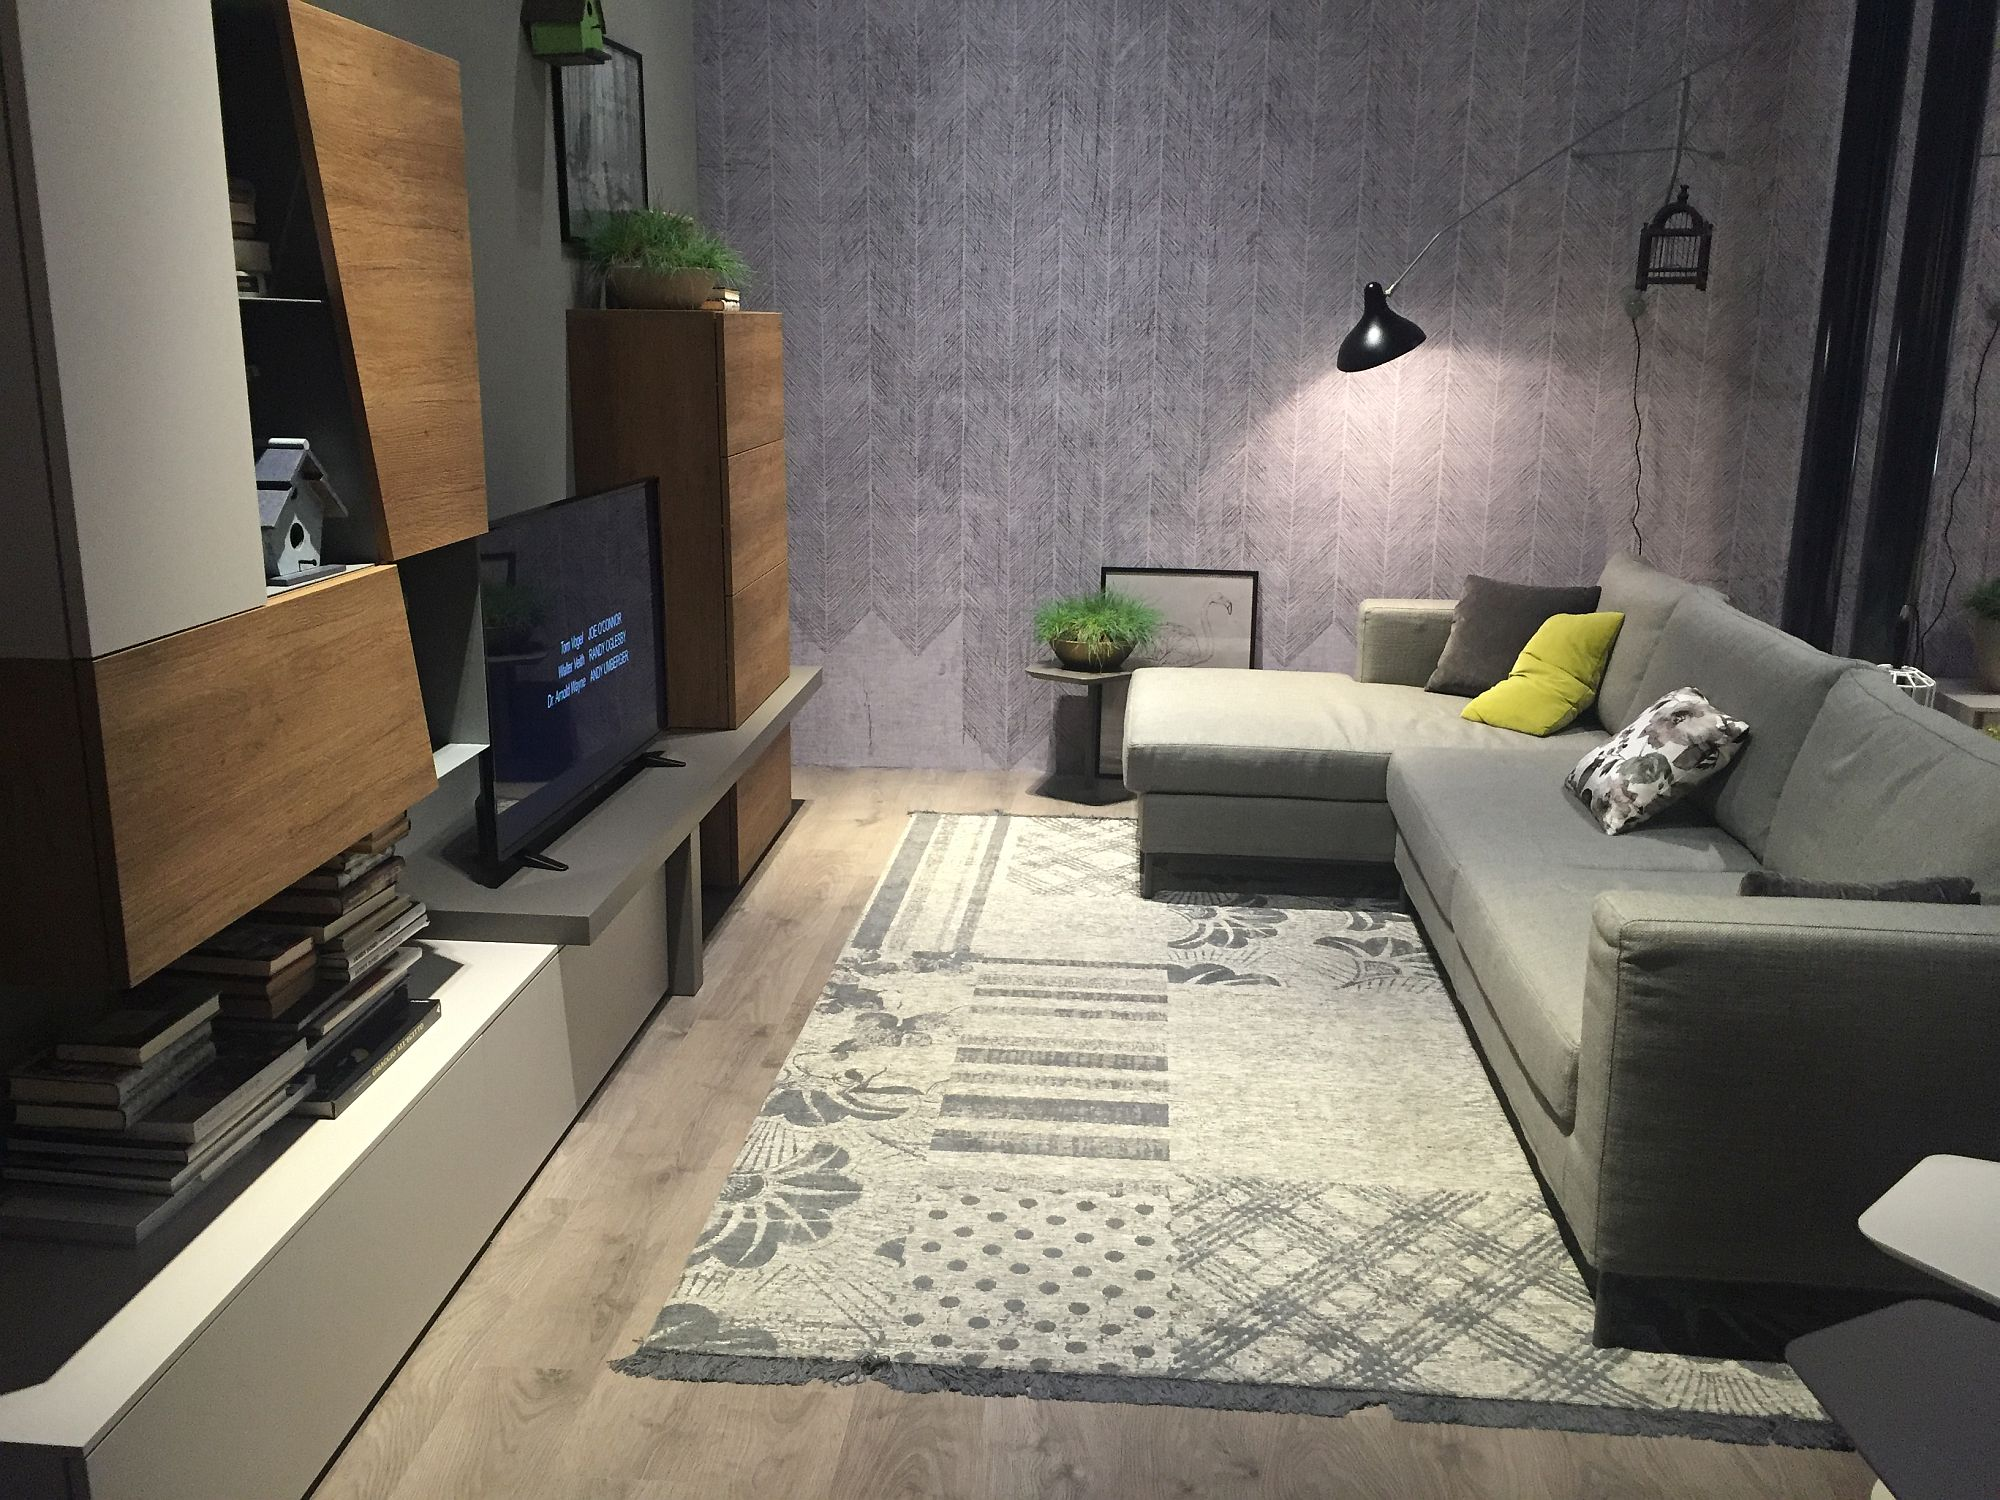 Of Small Living Room Decorating Maximize Space And Style 25 Smart And Trendy Living Room Daccor Ideas